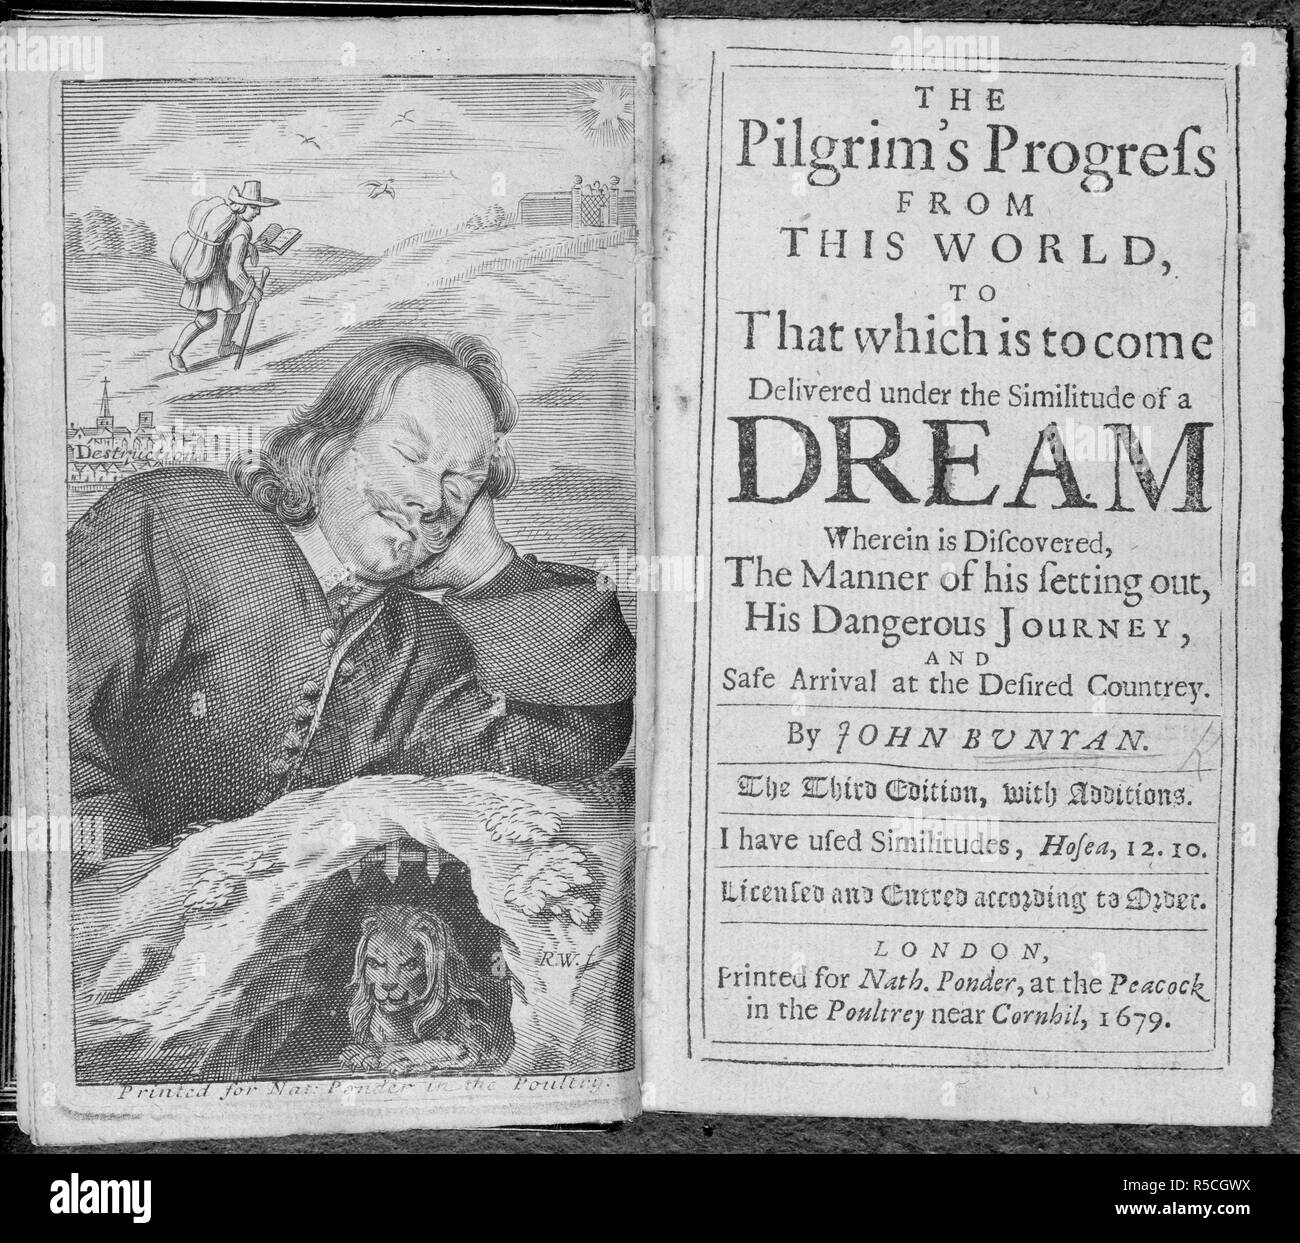 Portrait and title page of 'Pilgrim's Progress'. [The Pilgrim's Progress from this world, to that which is to come: delivered under the similitude of a dream. Wherein is discovered, the manner of his setting out, his dangerous journey; and safe arrival at the desired countrey.]. London, 1679. Source: C.70.aa.3, frontispiece and title page. Language: English. Author: BUNYAN, JOHN. - Stock Image